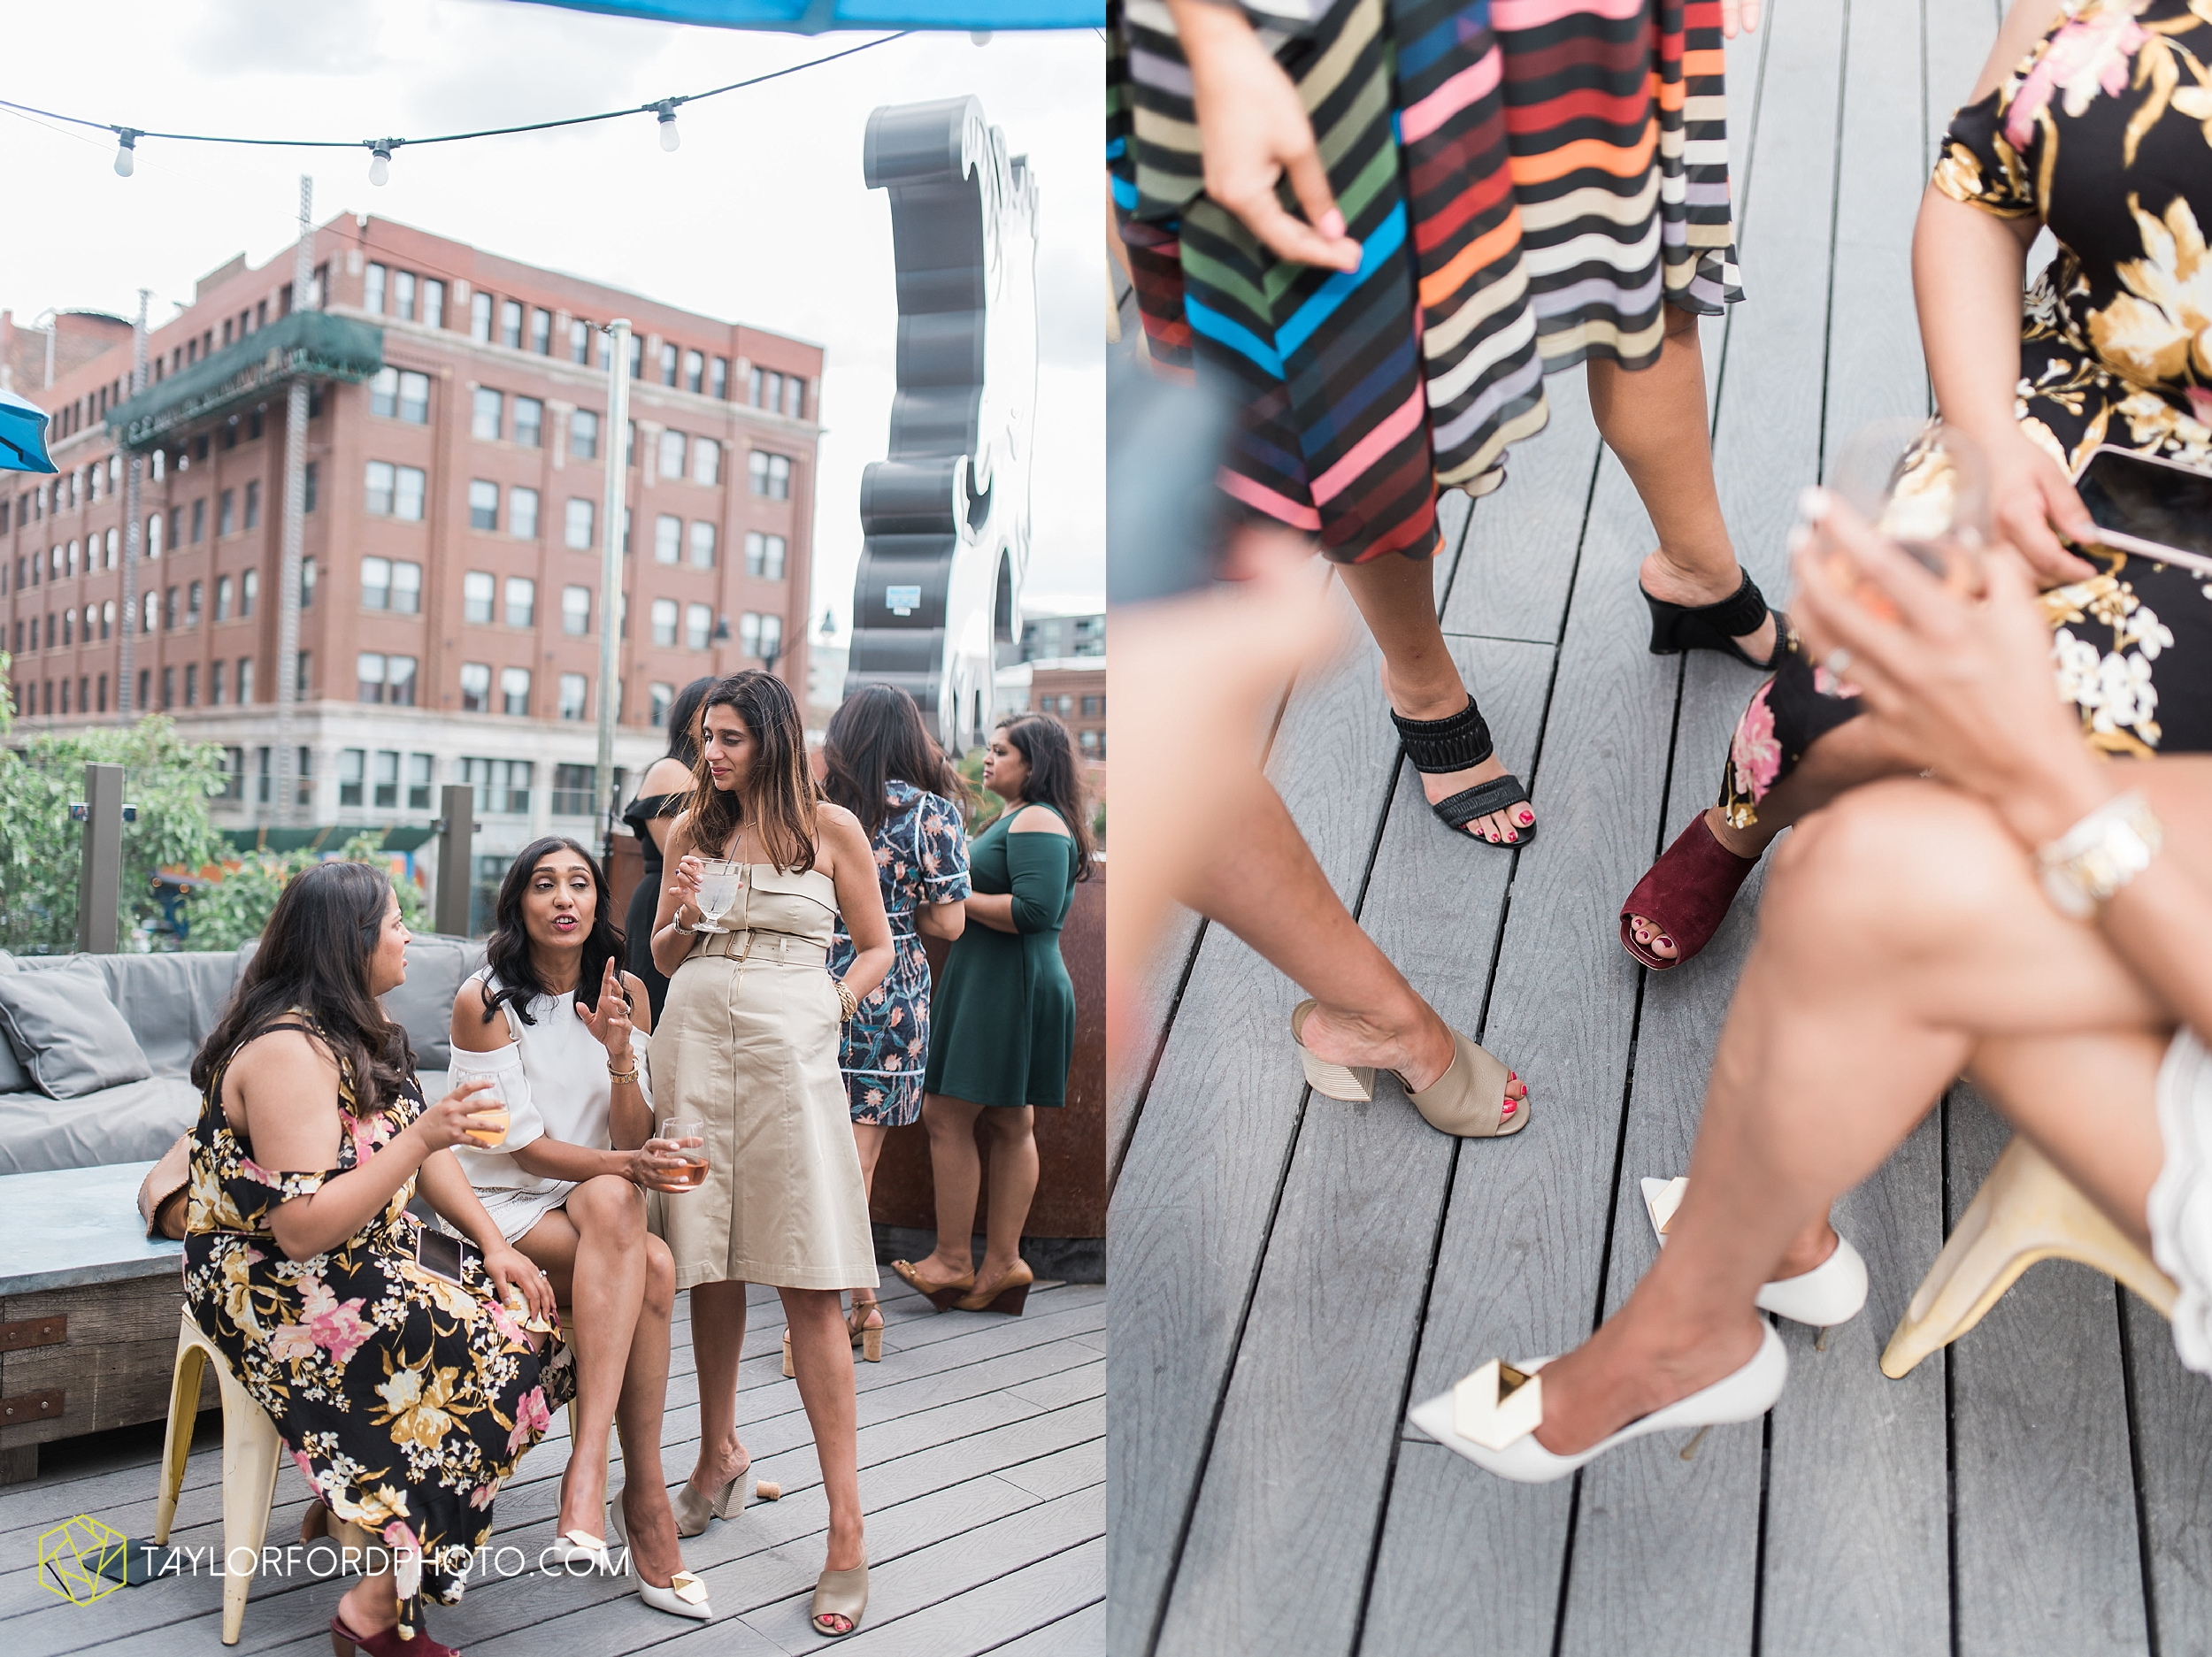 chicago-illinois-bridal-shower-wedding-engagement-photographer-Taylor-Ford-Photography-the-little-goat-diner-rooftop-indian-ceremony_5126.jpg